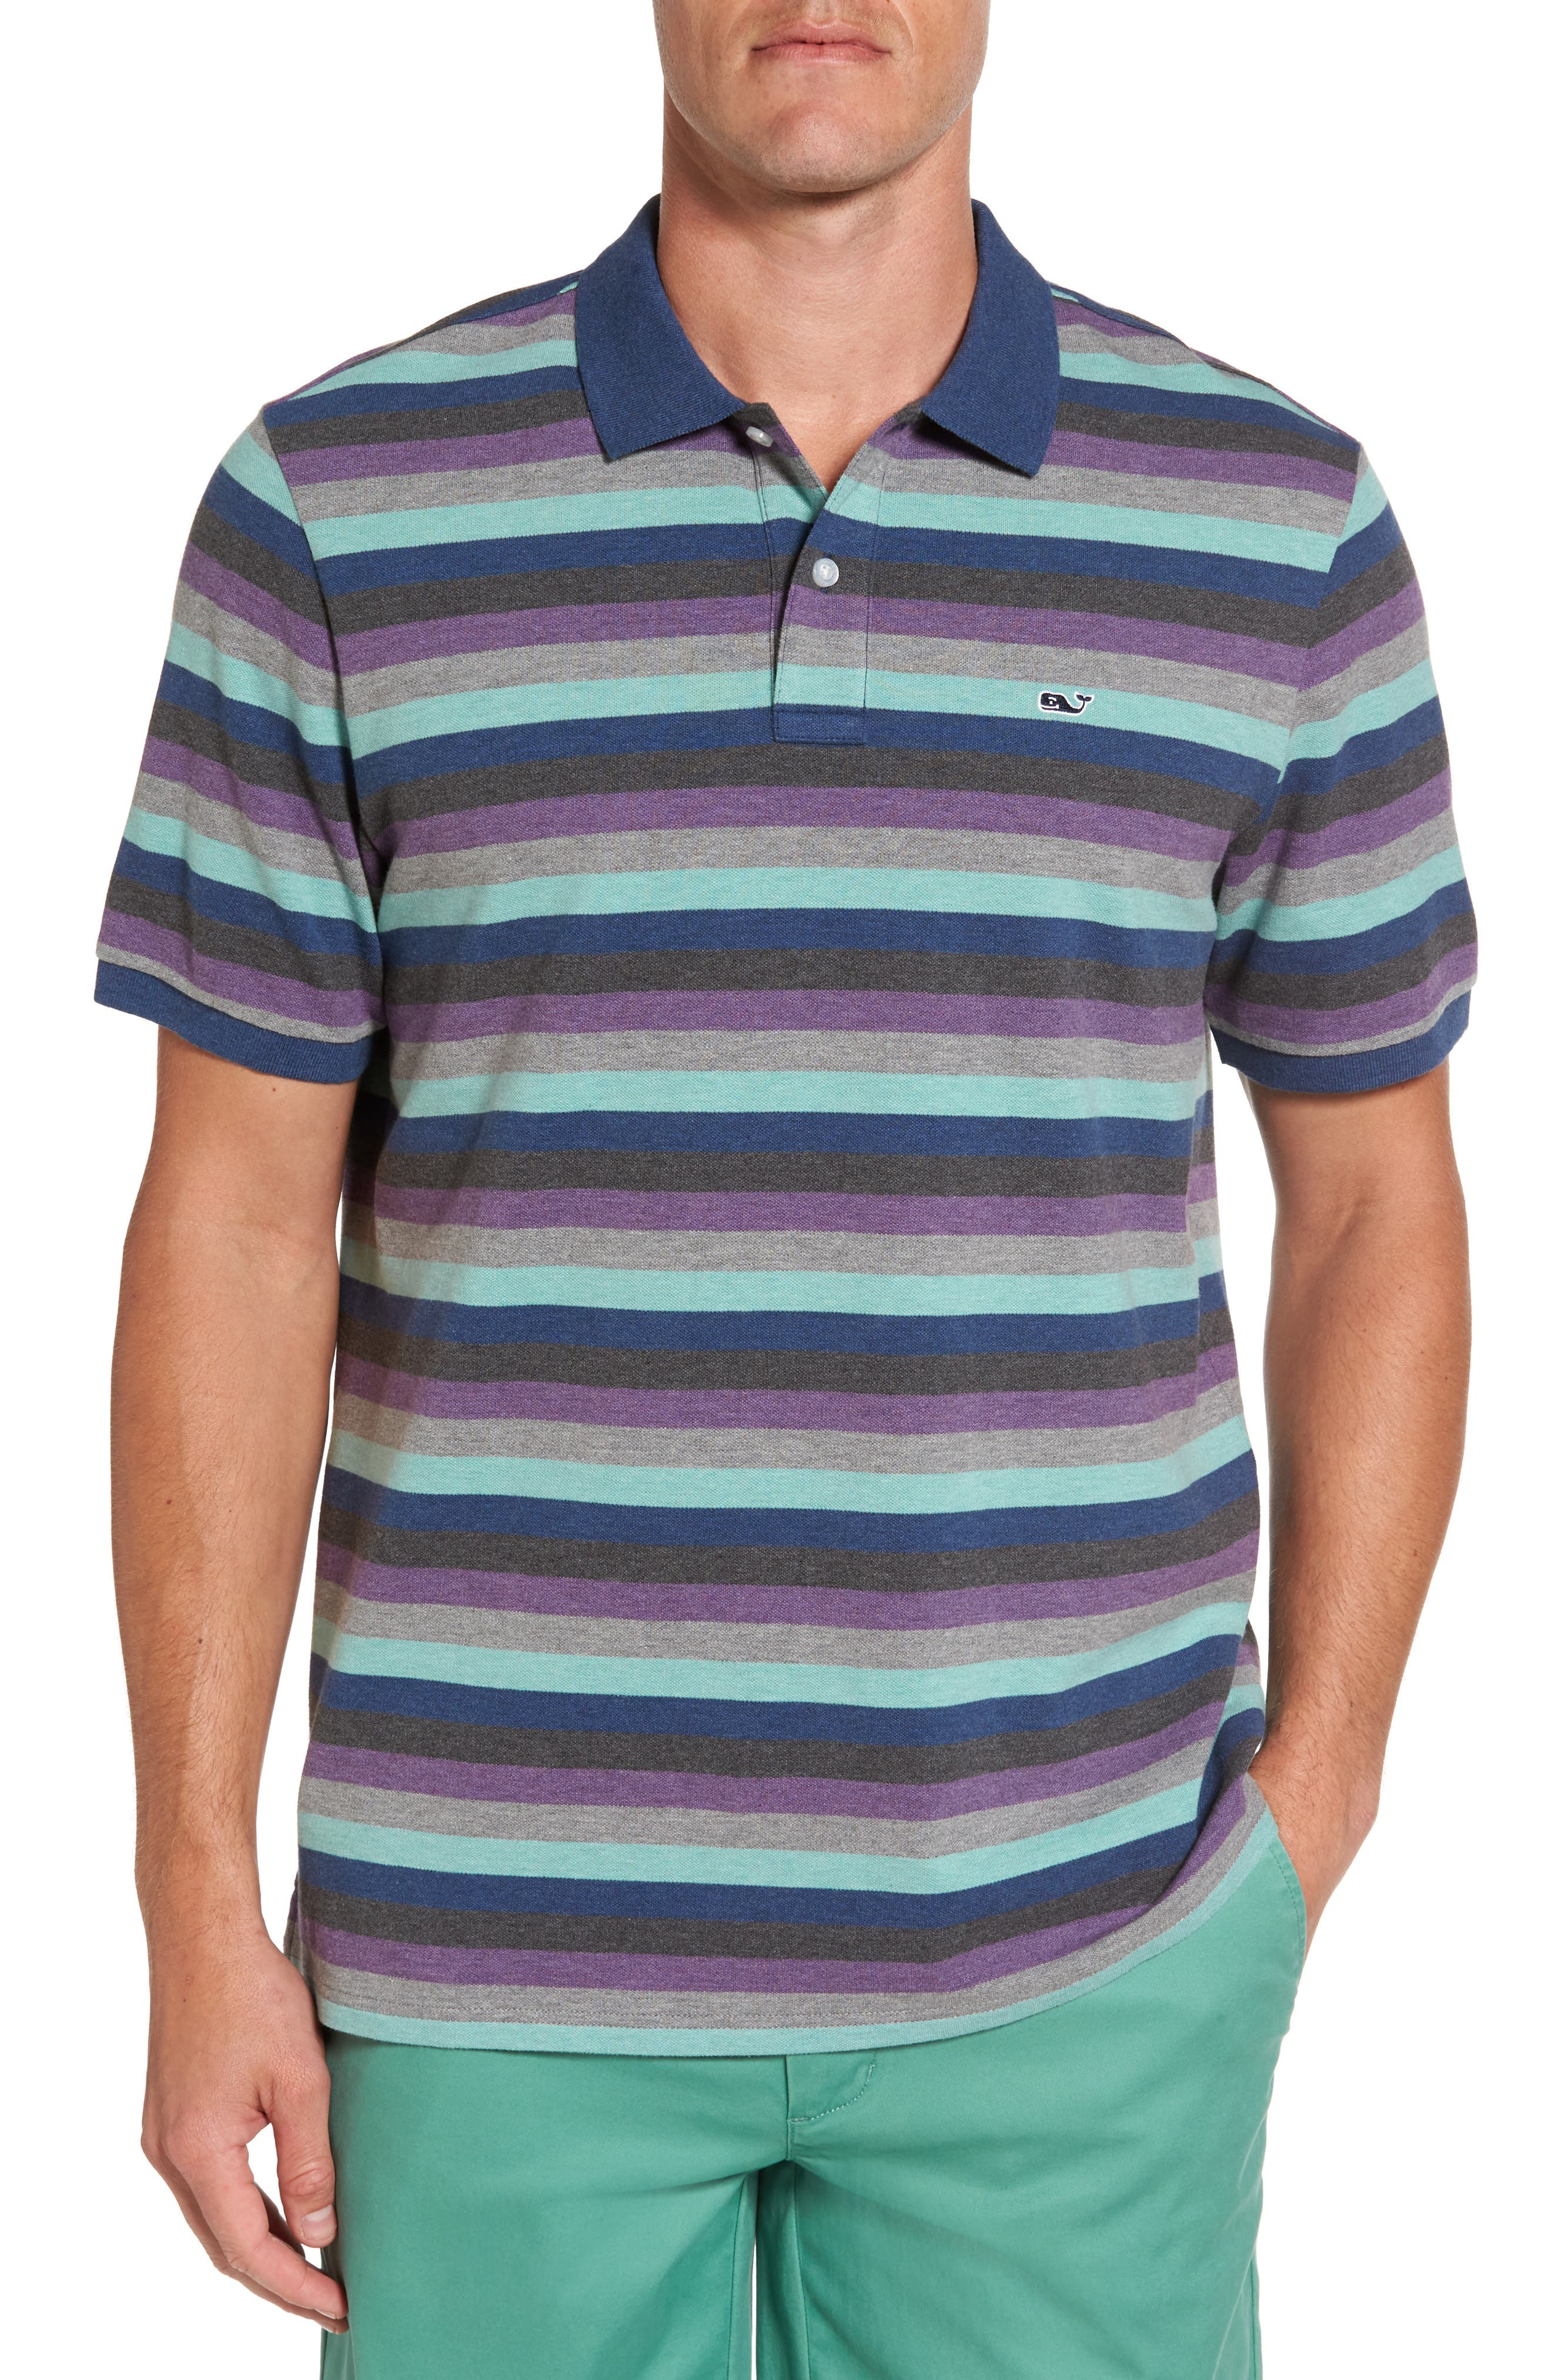 Alternate Image 1 Selected - vineyard vines Striped Polo